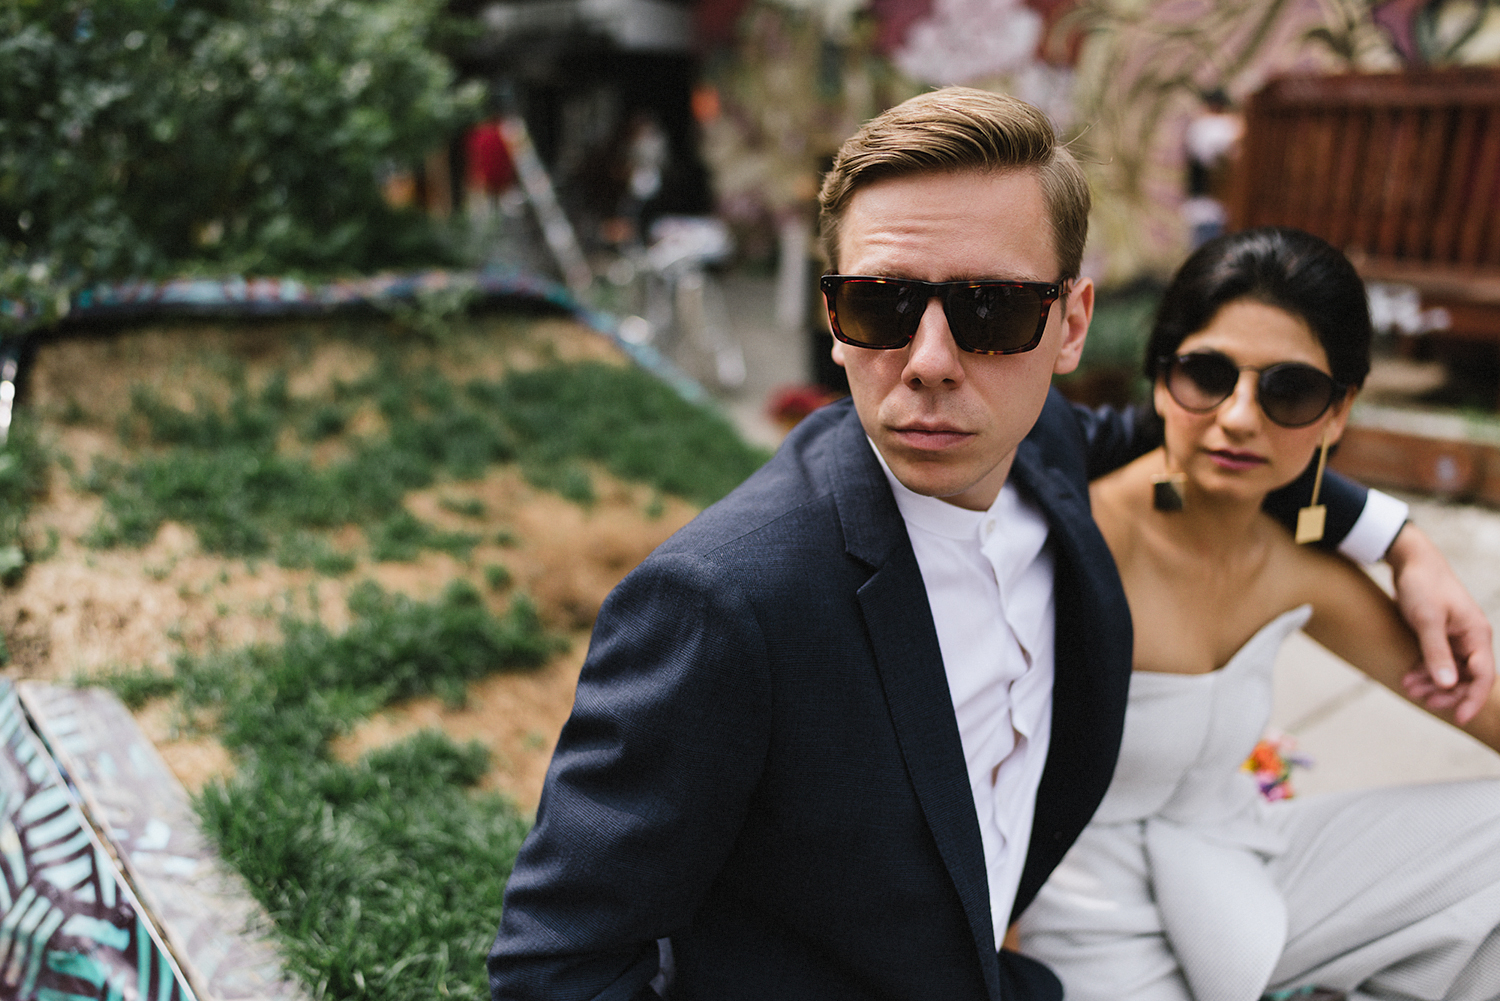 Intimate-Toronto-Pop-Up-Elopement-Downtown-Urban-Kensington-film-analog-photography-toronto-wedding-photographers-alternative-hipster-bride-and-groom-badass-candid-photos-with-garden-car-badass-cool.jpg